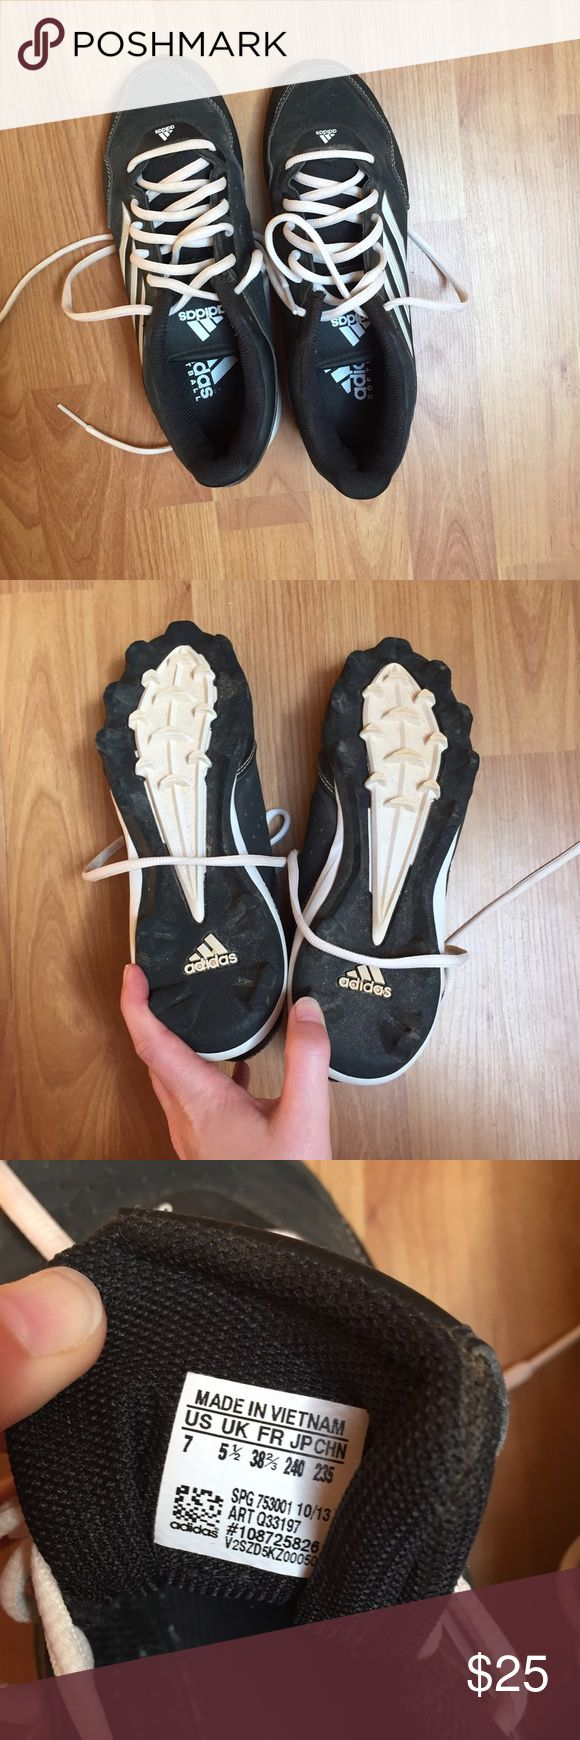 Adidas Women Black white softball baseball shoes 7 Excellent condition softball or baseball shoes. Only worn a couple times. Has some dirt but are in great condition. adidas Shoes Athletic Shoes